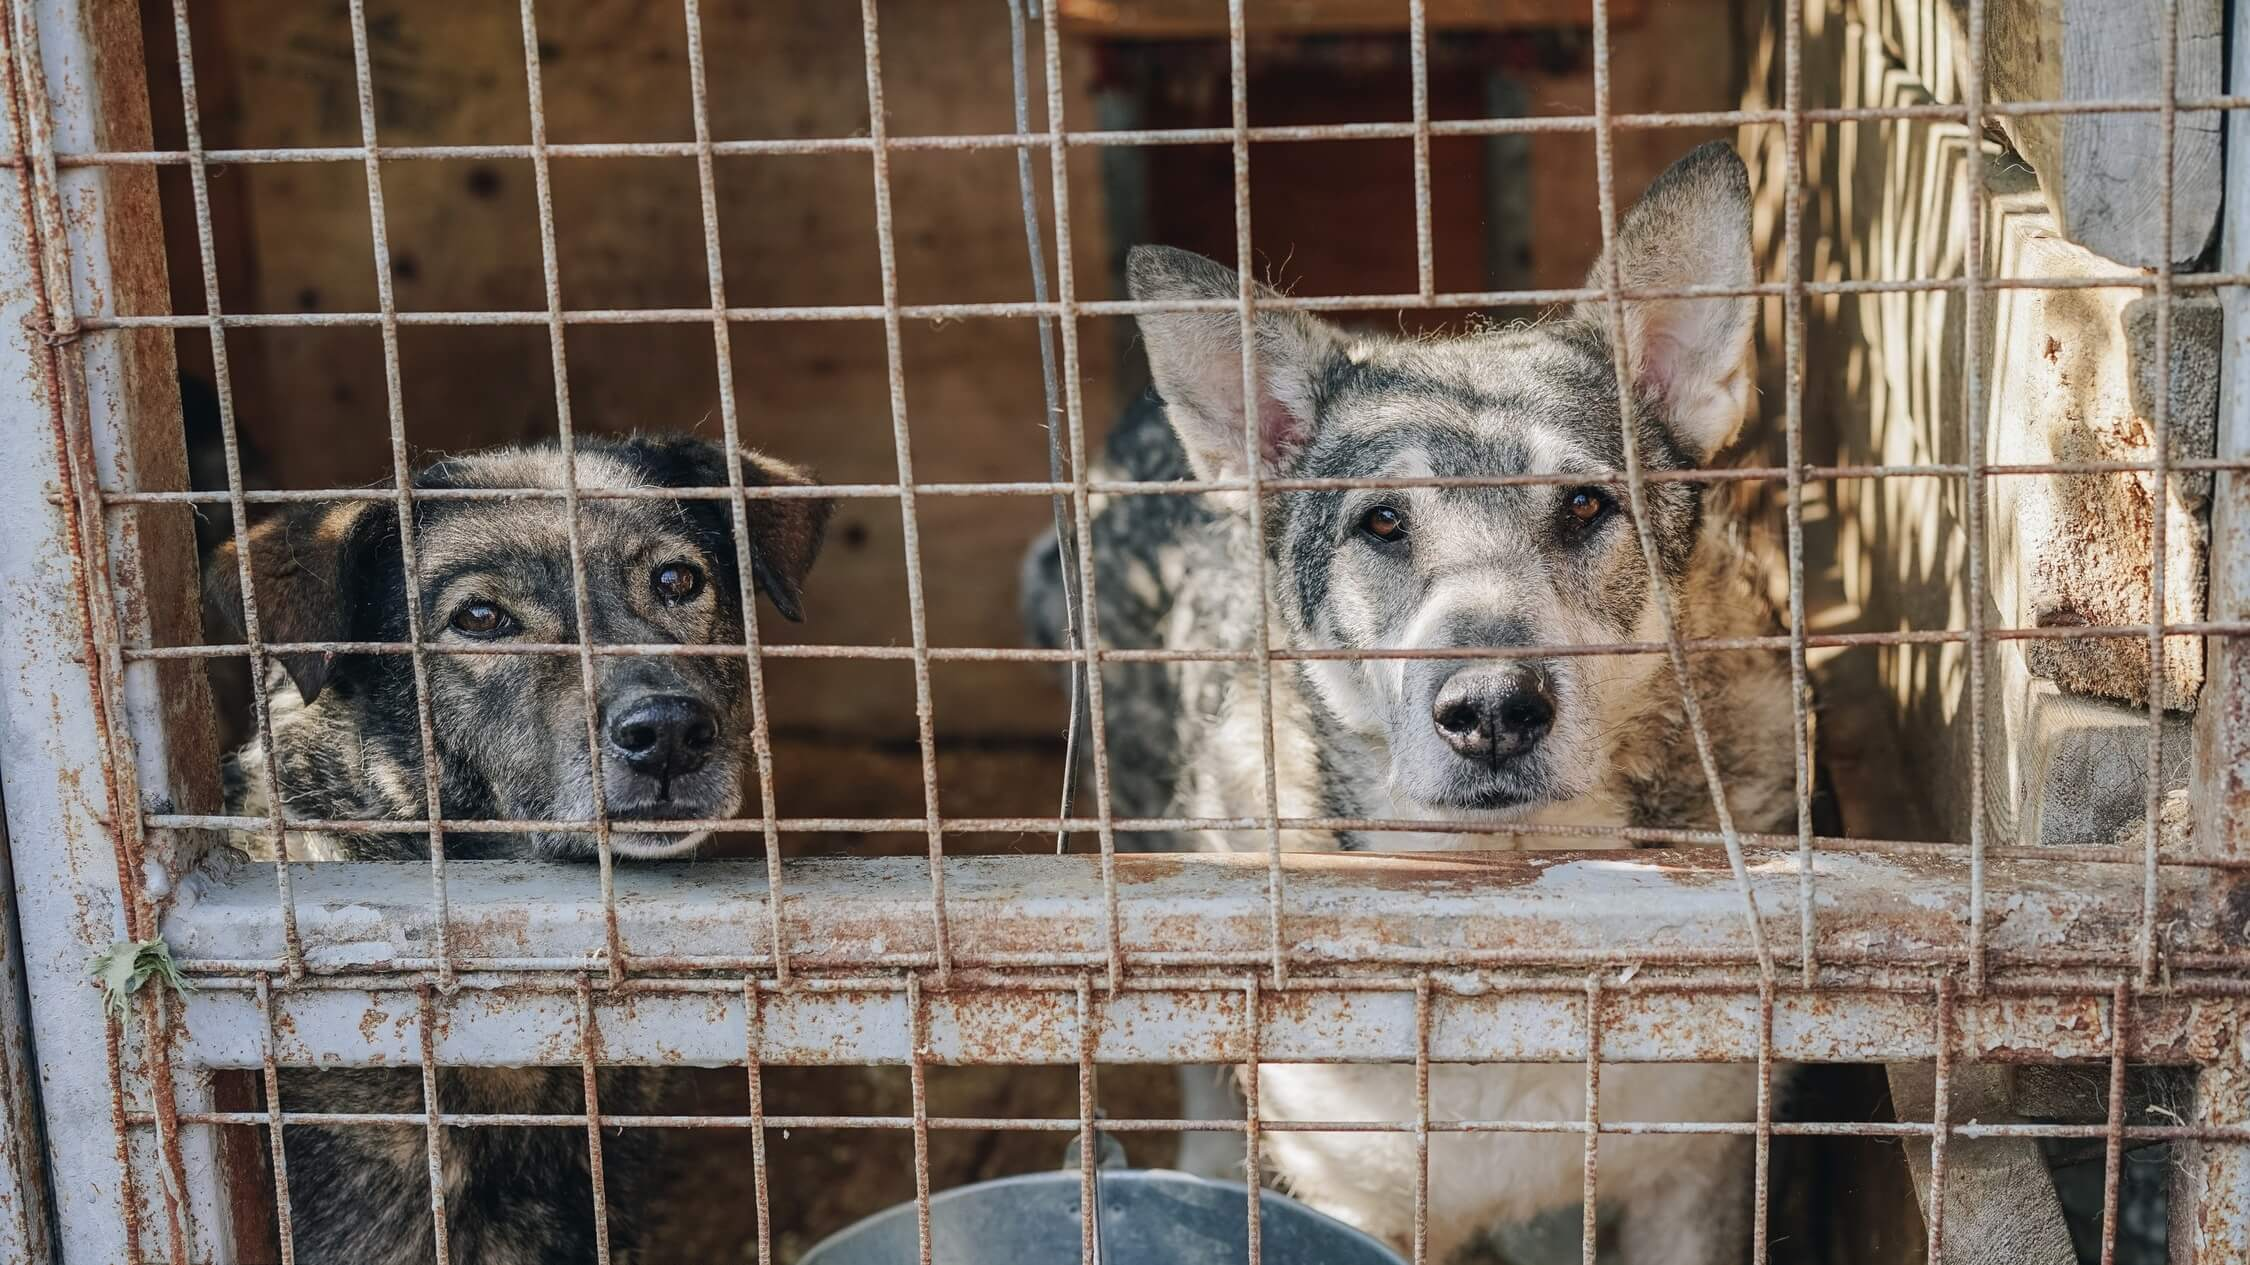 22 Dogs Rescued From Becoming Dinner at Shanghai Restaurant